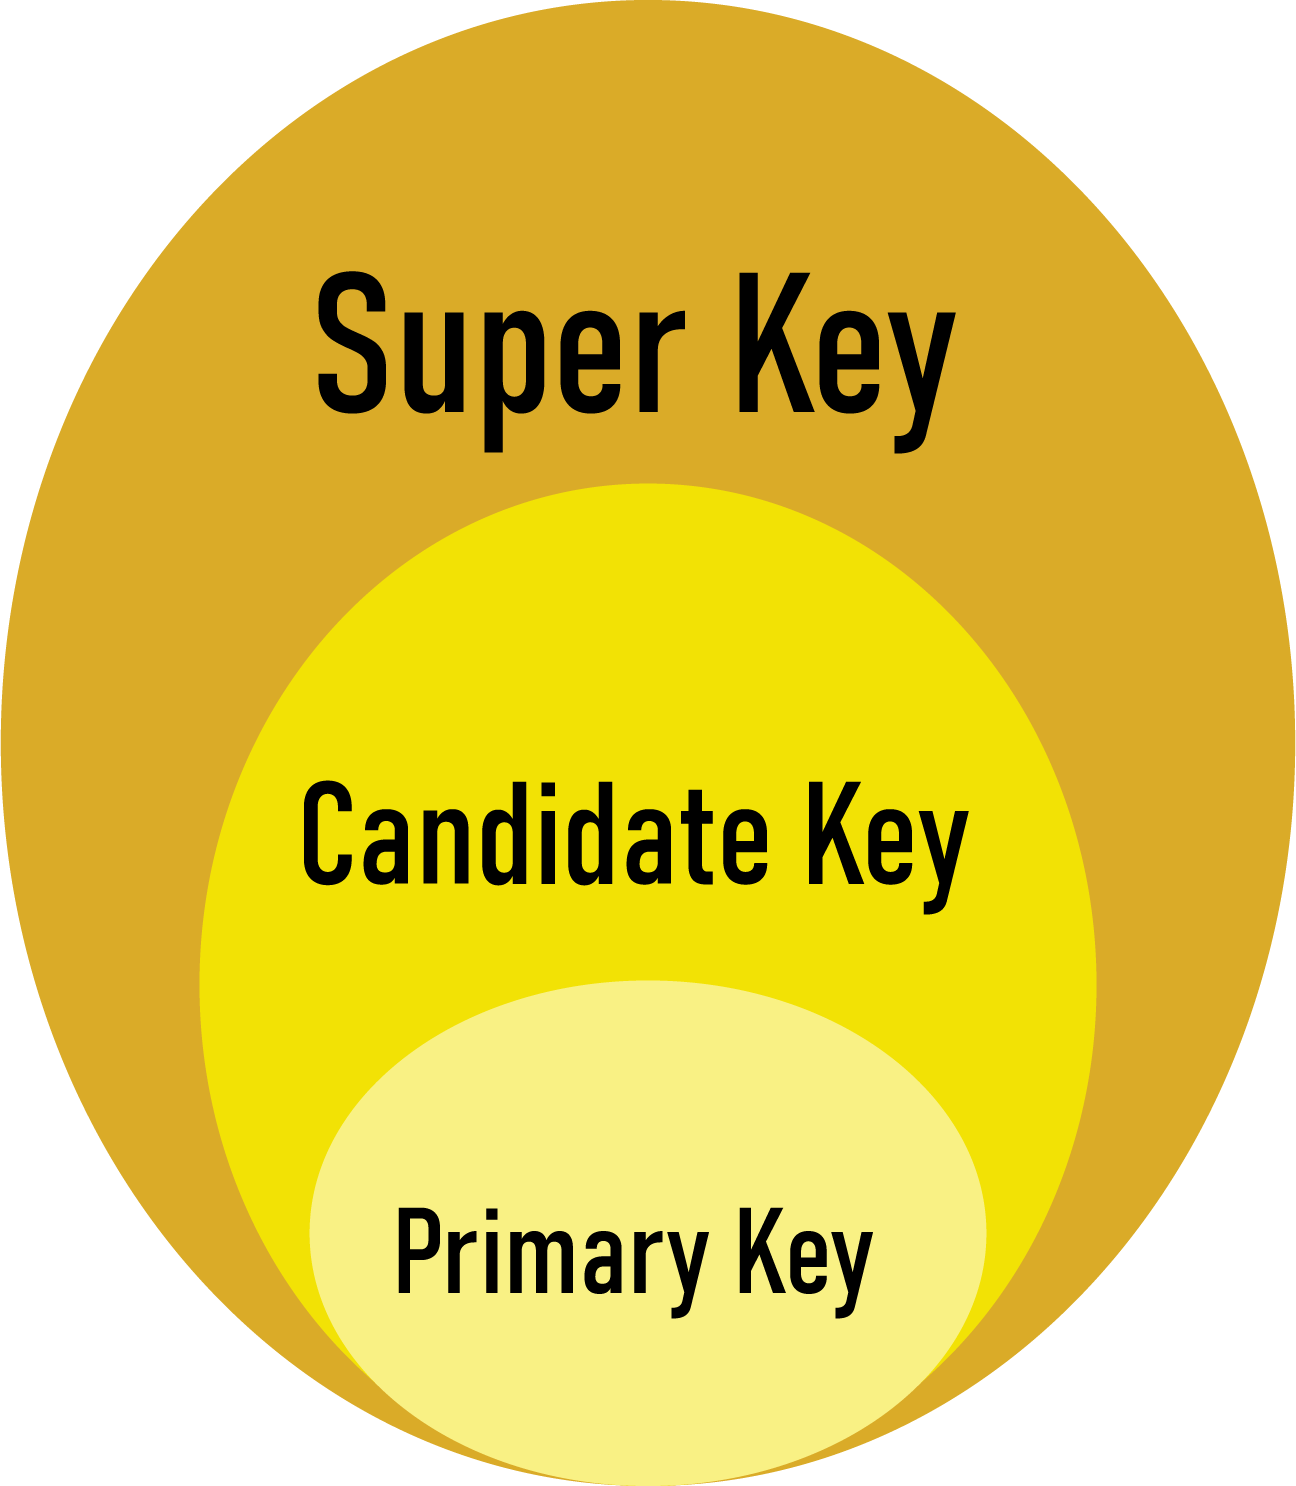 Super Key vs Candidate Key vs Primary Key